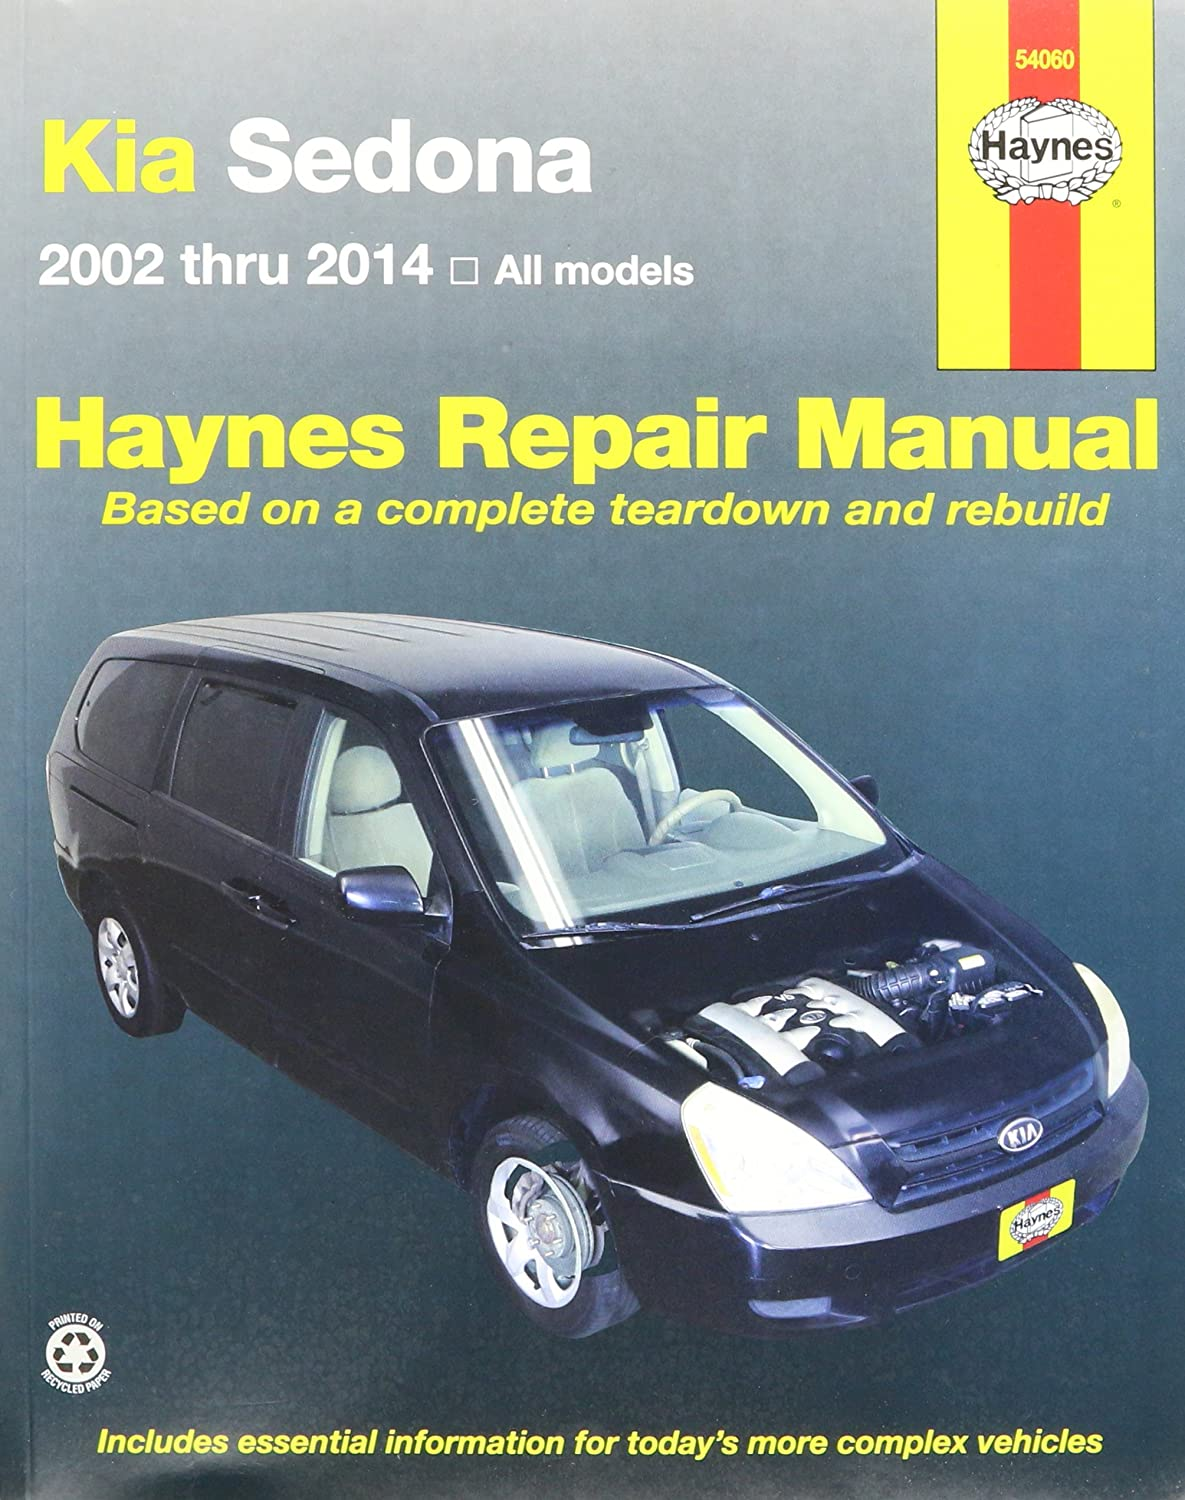 Amazon.com: Haynes Repair Manuals Kia Sedona, '02-'14 (54060): Automotive